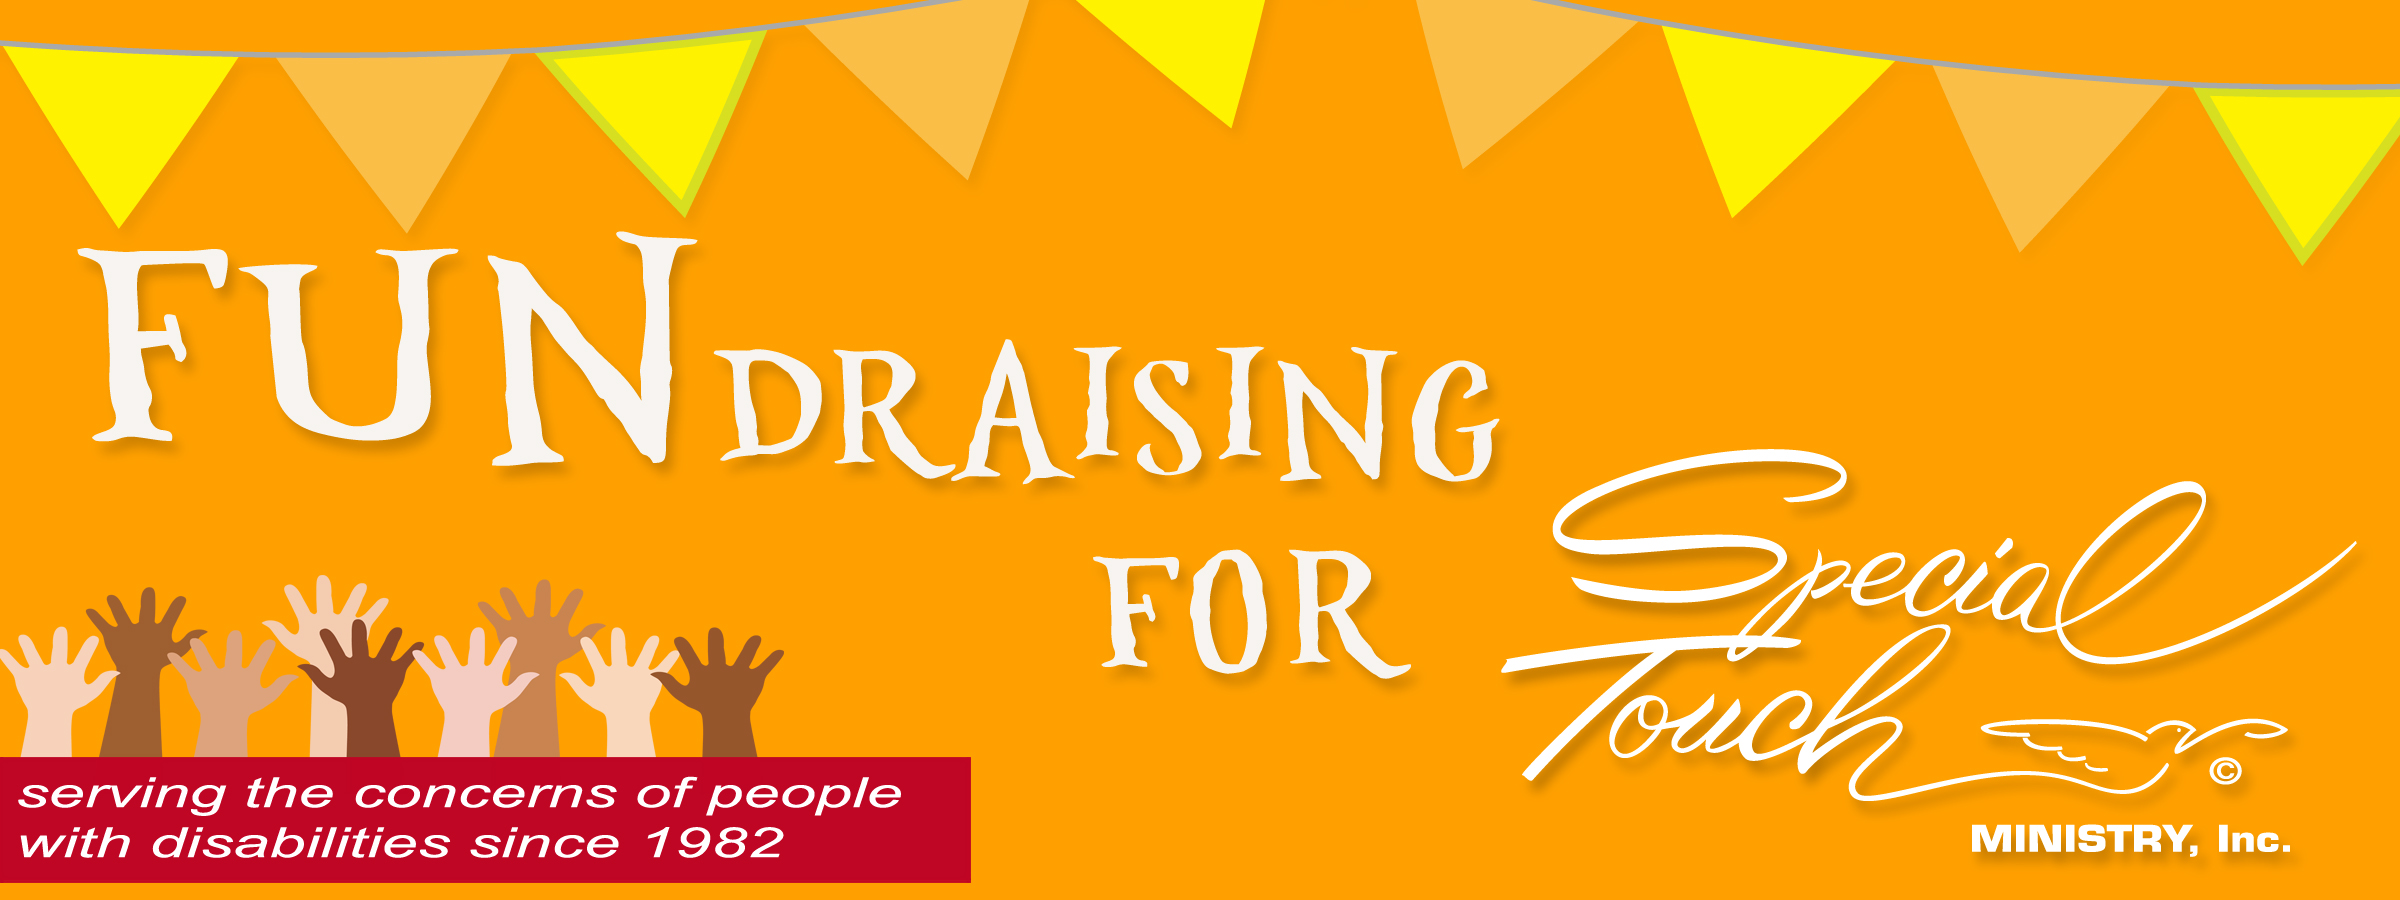 FUNdraising for Special Touch